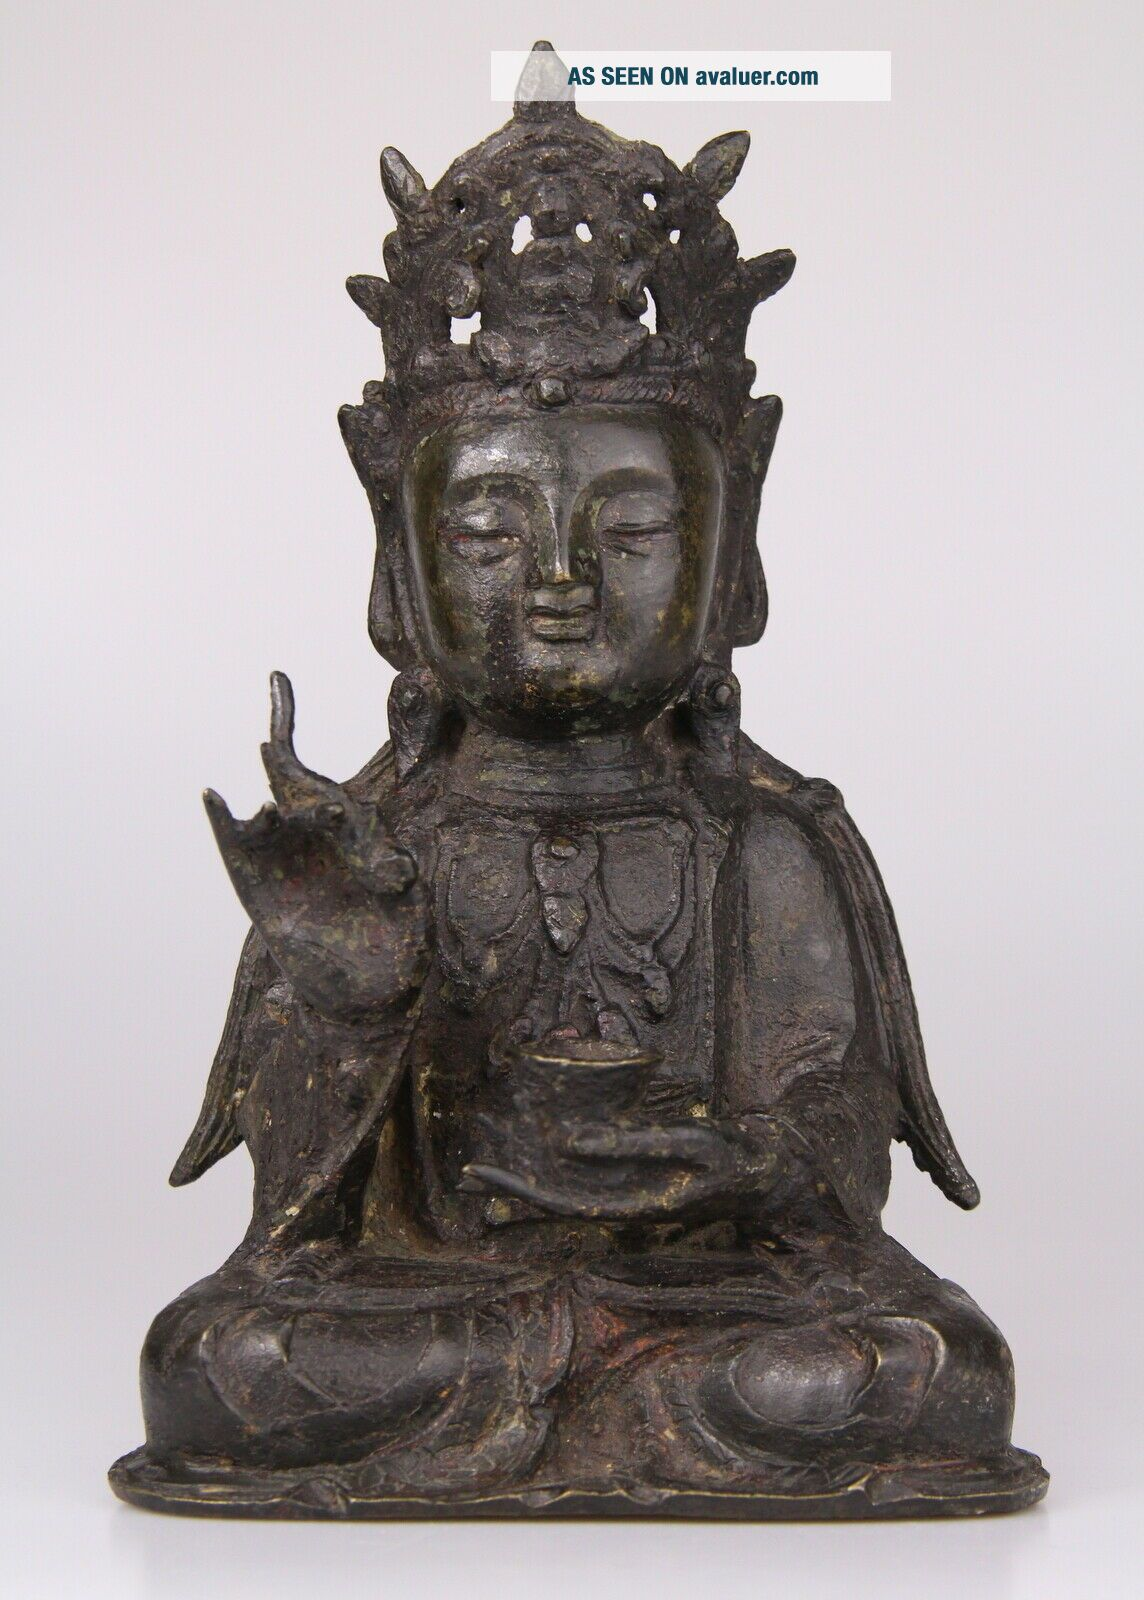 Antique Chinese Bronze Buddha Statue Ming Dynasty 16th 17th C.